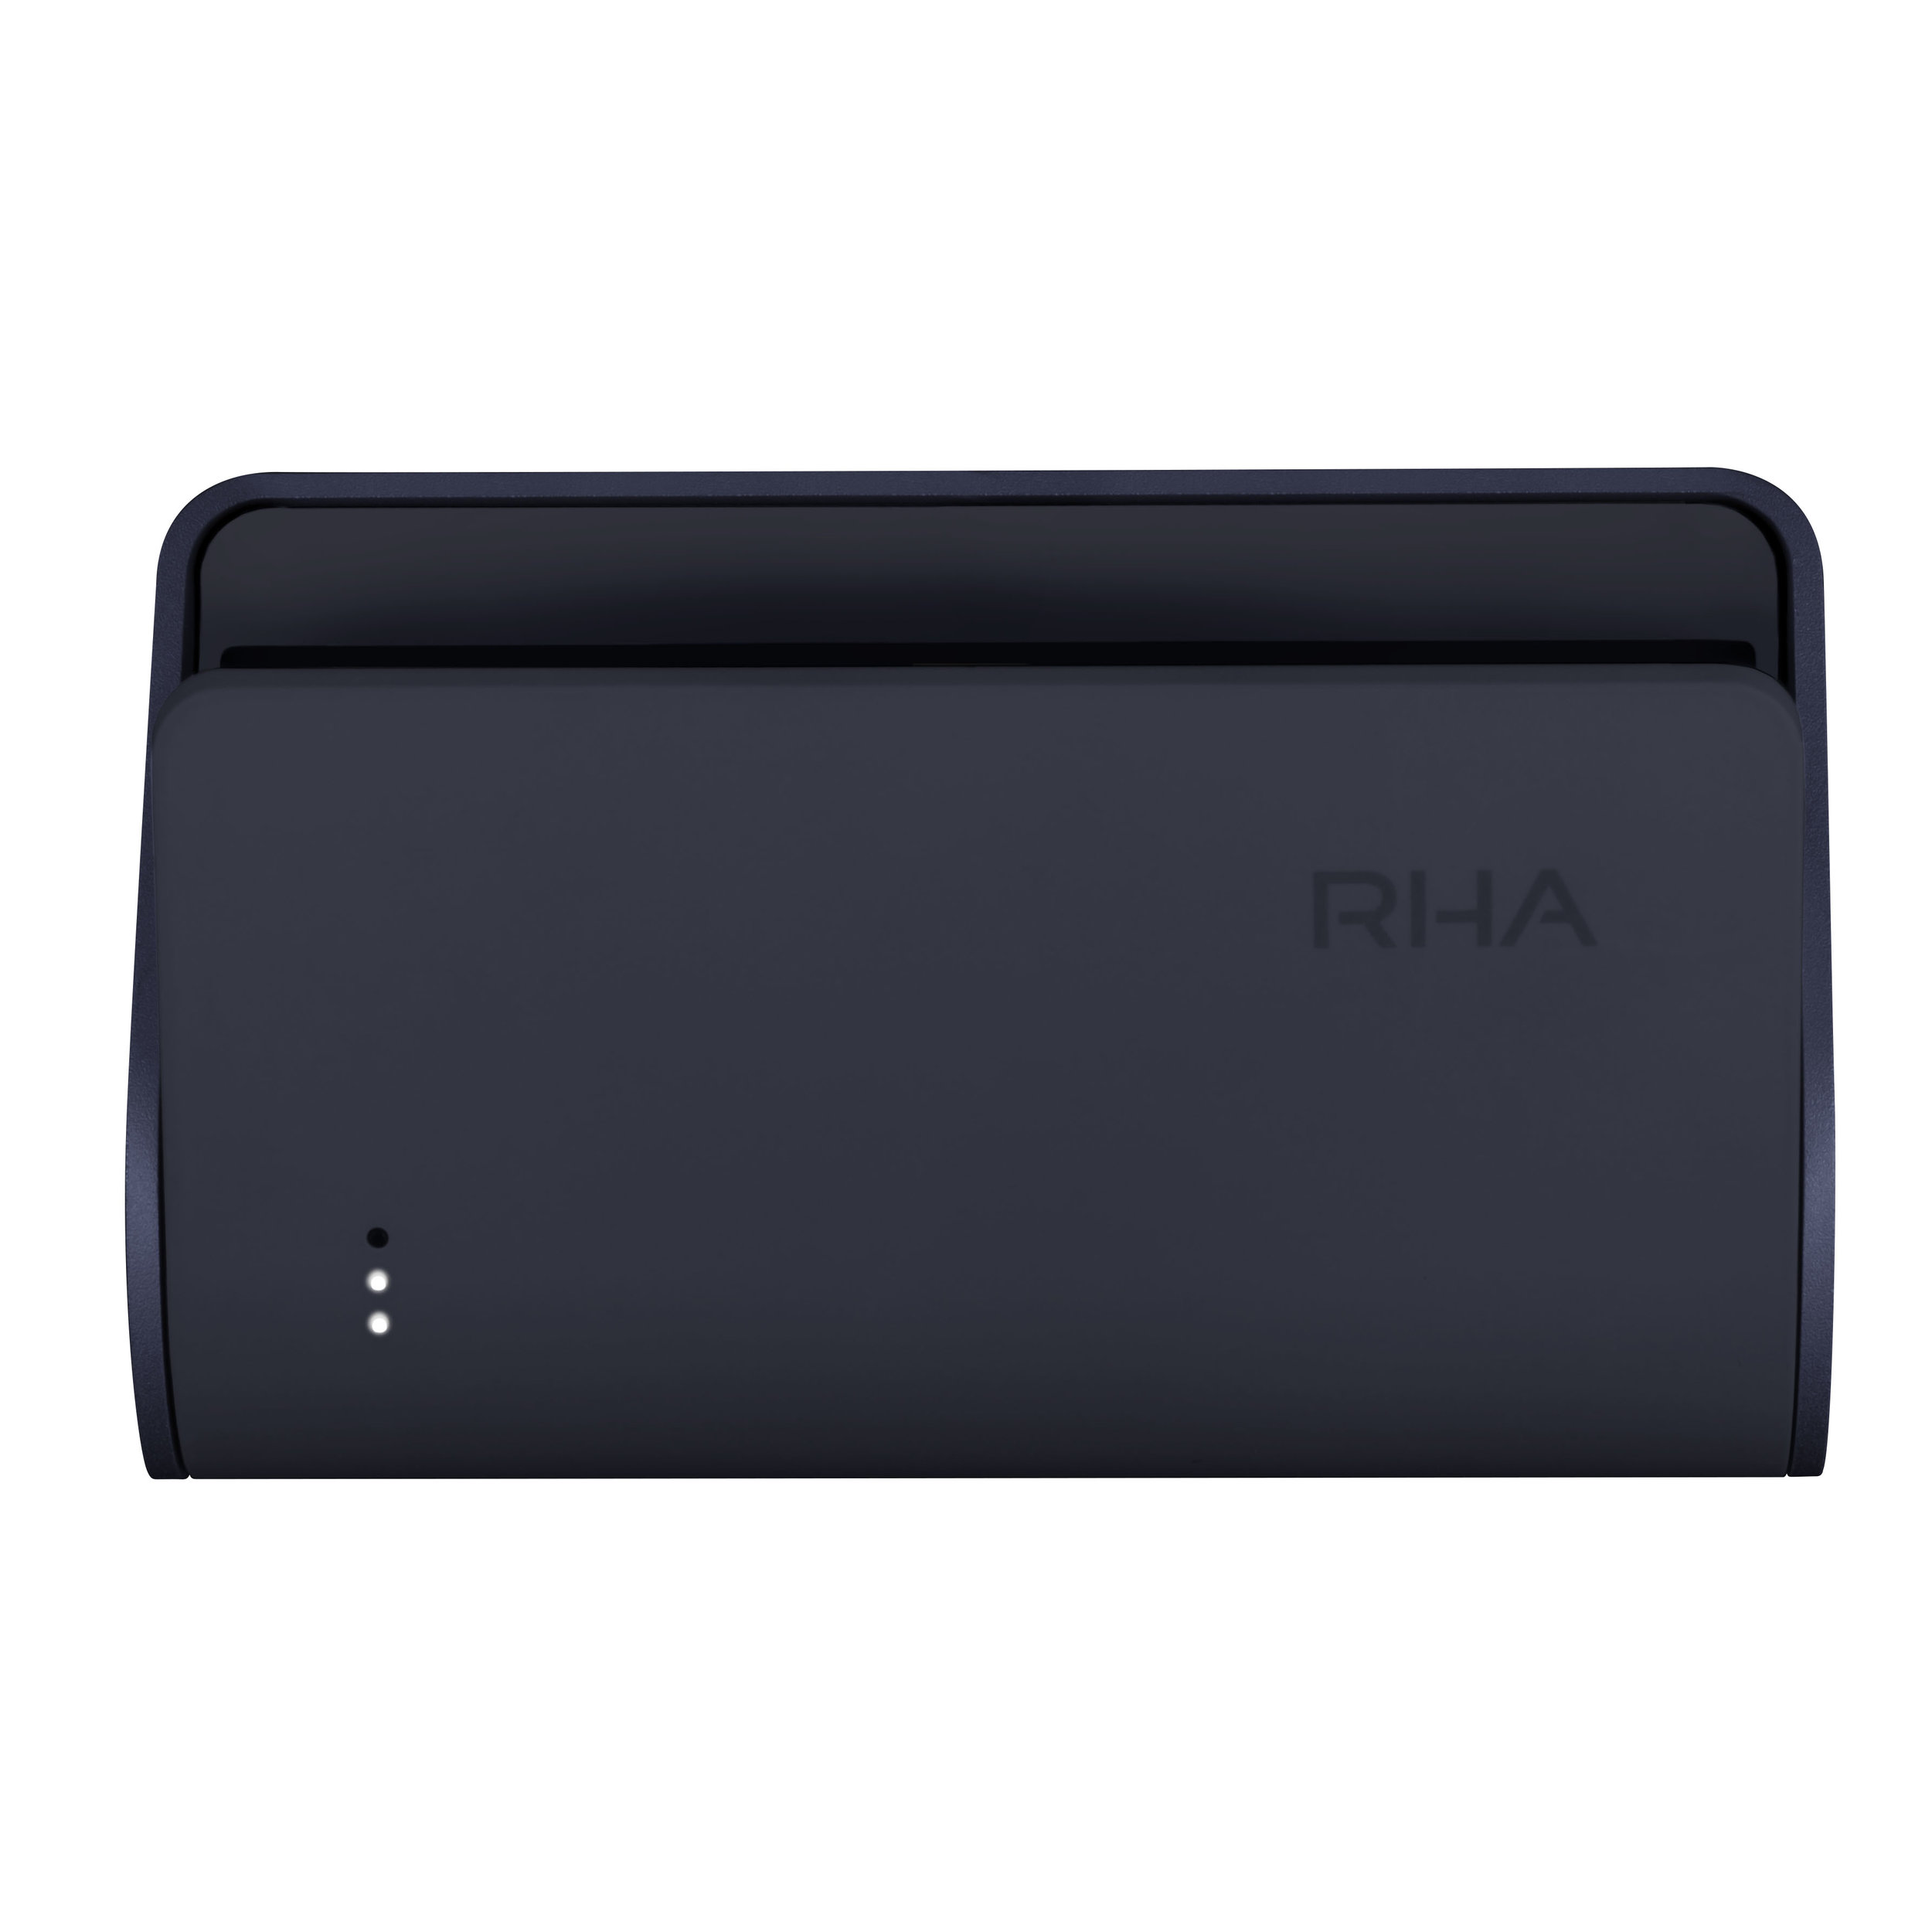 RHA_TrueConnectPackaging_190508_MRP_0038.jpg